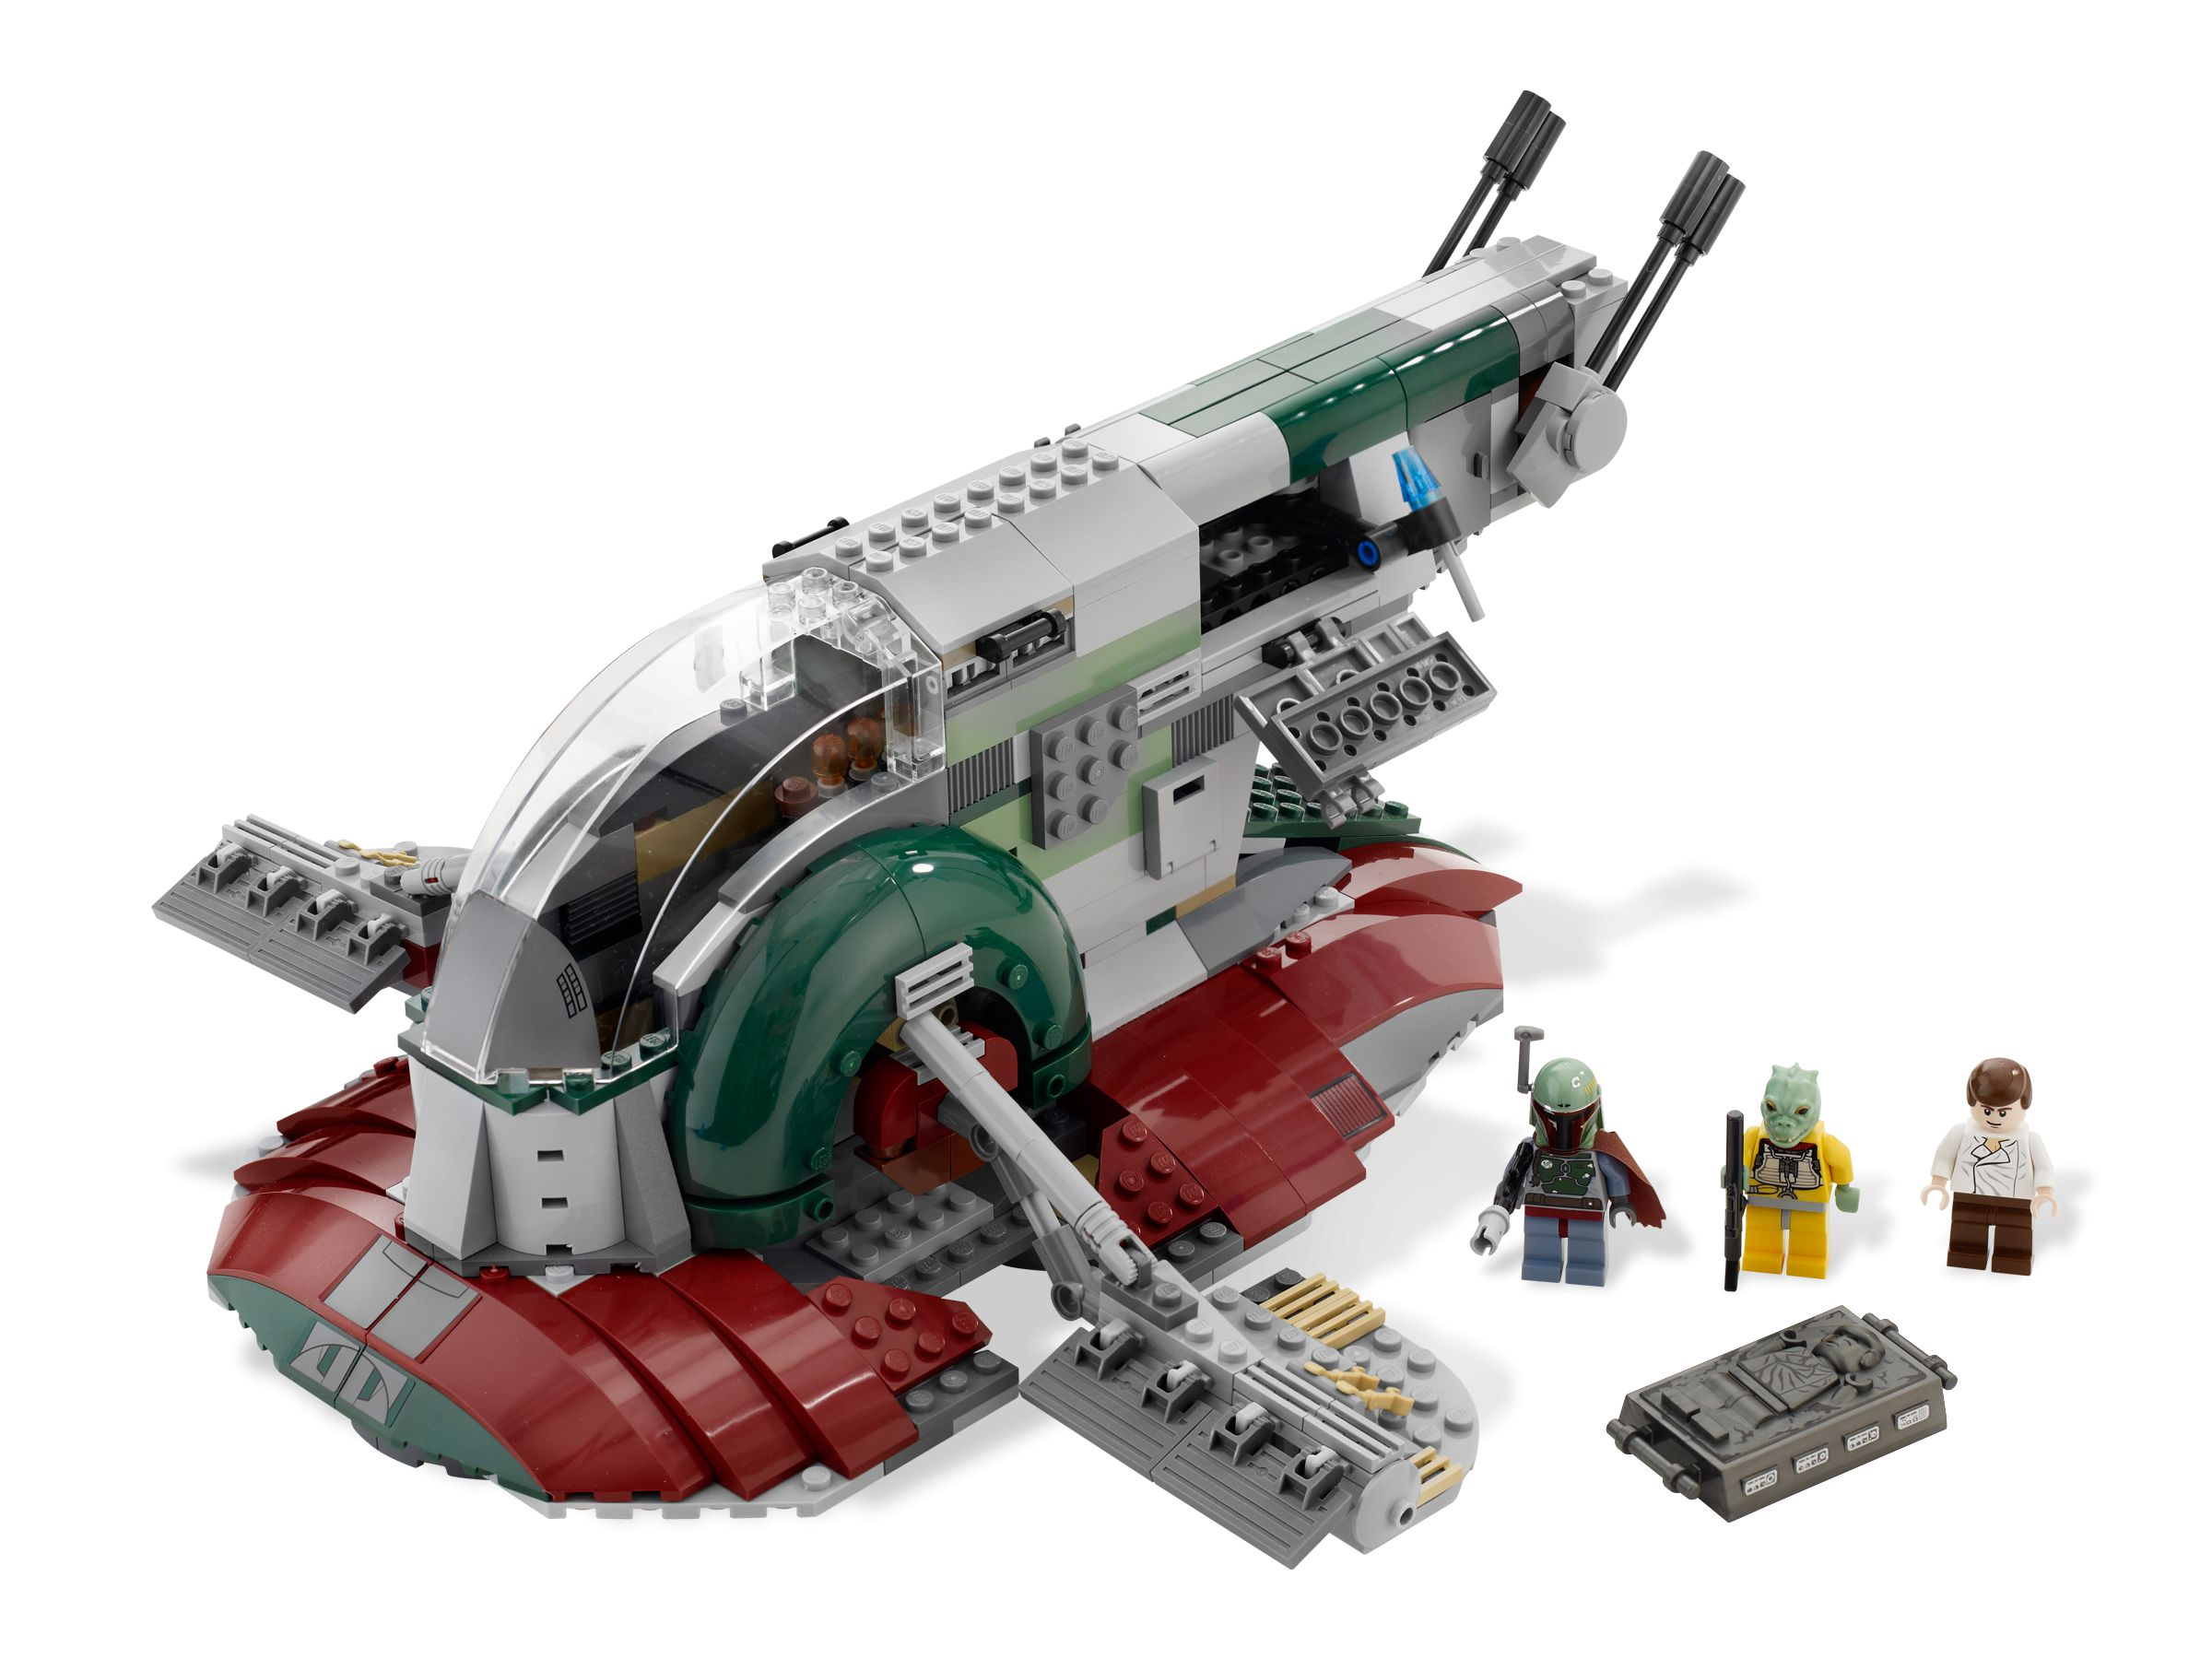 lego star wars 8097 instructions